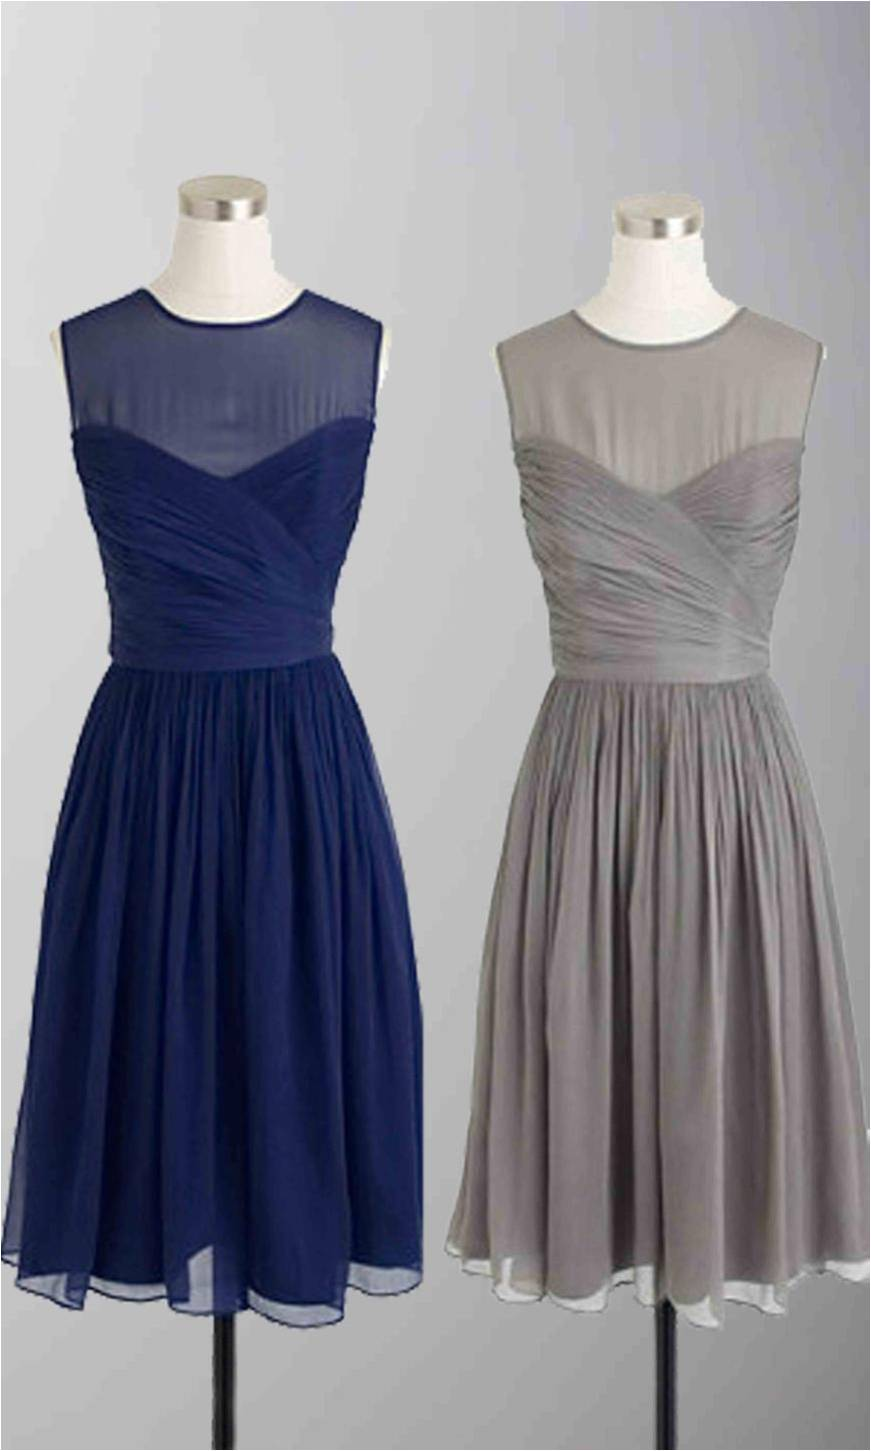 Cross Illusion Sweetheart Flirty Cocktail Dresses KSP179 [KSP179] - £87.00 : Cheap Prom Dresses Uk, Bridesmaid Dresses, 2014 Prom & Evening Dresses, Look for cheap elegant prom dresses 2014, cocktail gowns, or dresses for special occasions? kissprom.co.uk offers various bridesmaid dresses, evening dress, free shipping to UK etc.